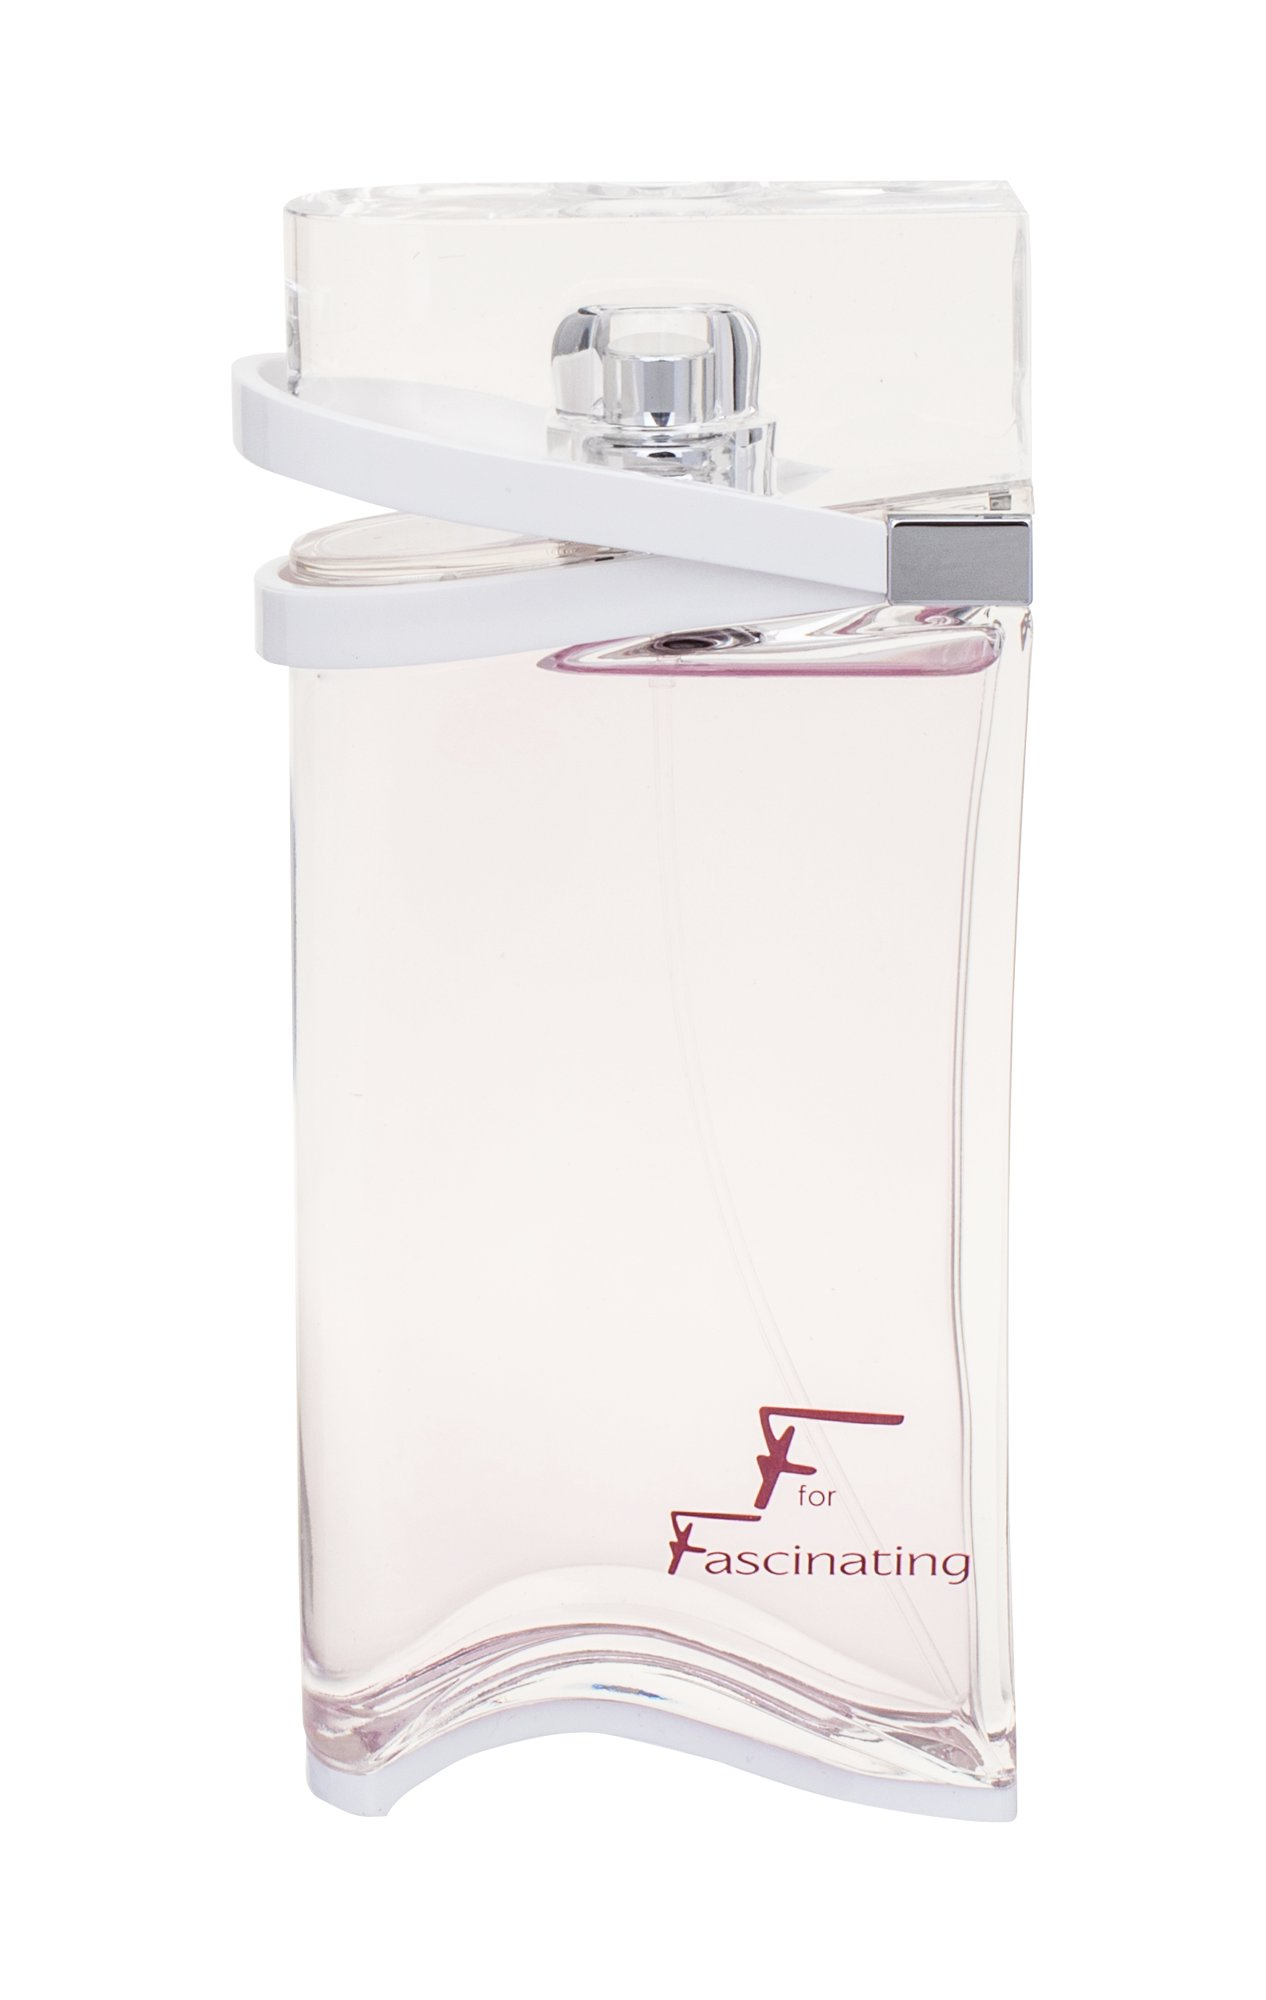 Salvatore Ferragamo F for Fascinating, Toaletná voda 90ml